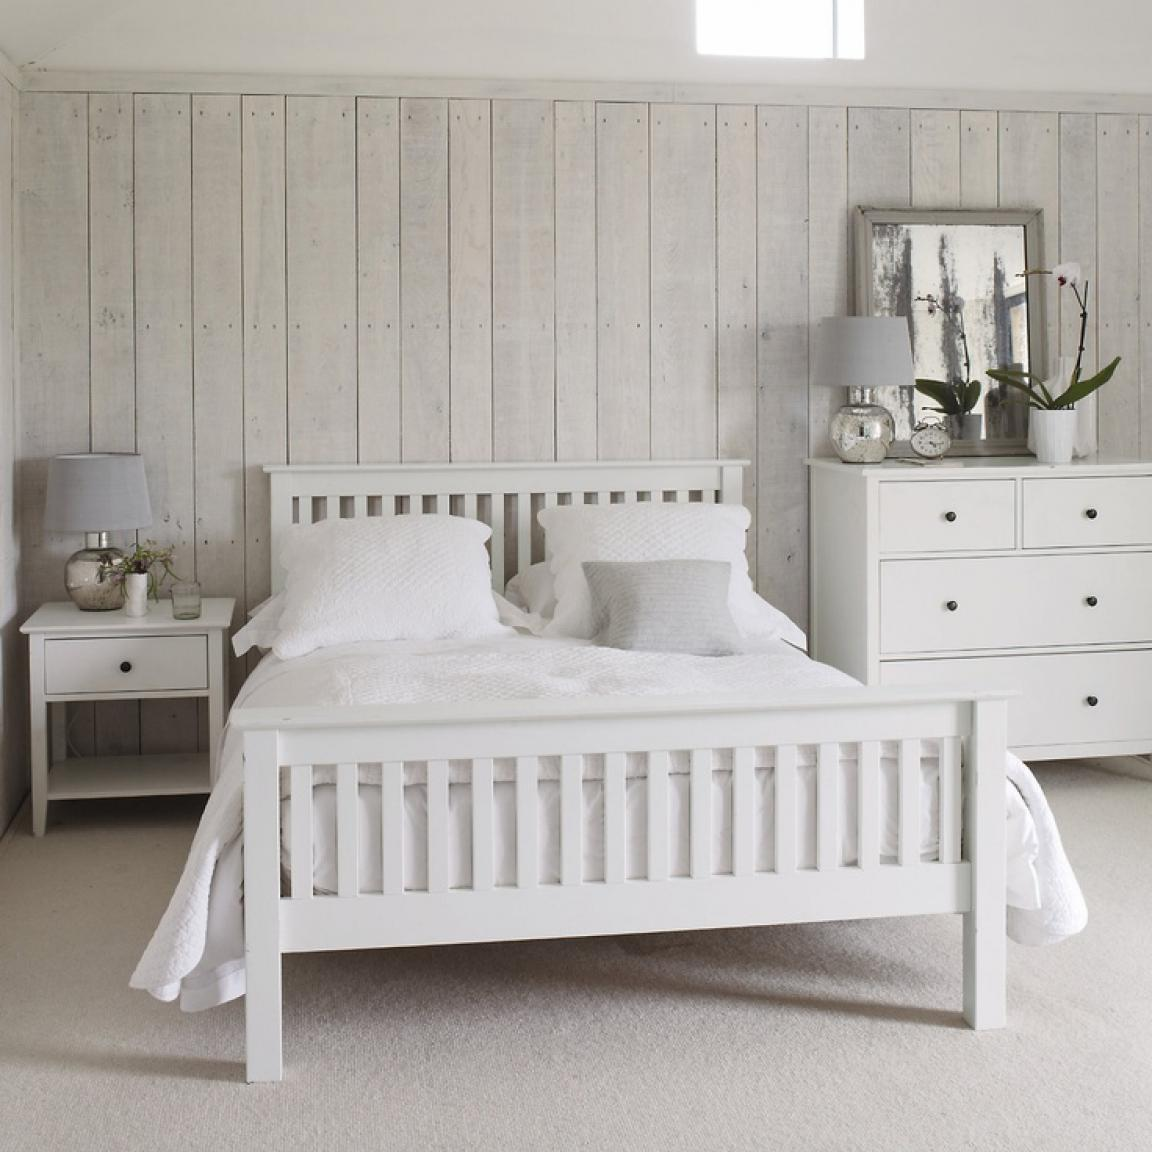 In Short Antique White Bedroom Furniture Is About As Perfect As It Gets So Revel In It Those Who Would Choose White Bedroom Furniture For Their Homes Are